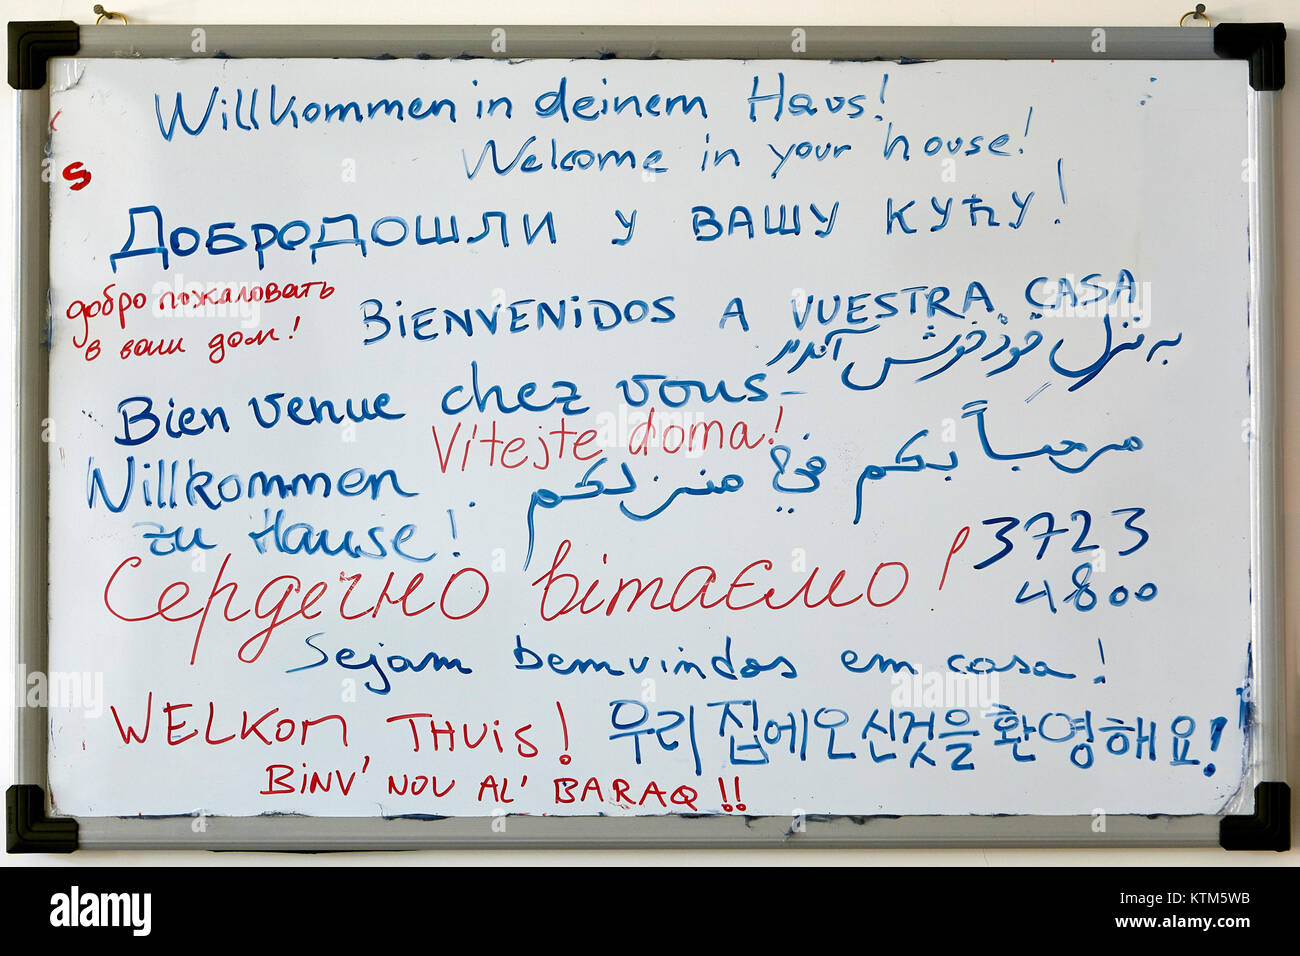 Yazd, Iran - April 22, 2017: A marker board from a youth hostel, containing a guest greeting, written by hand, on - Stock Image